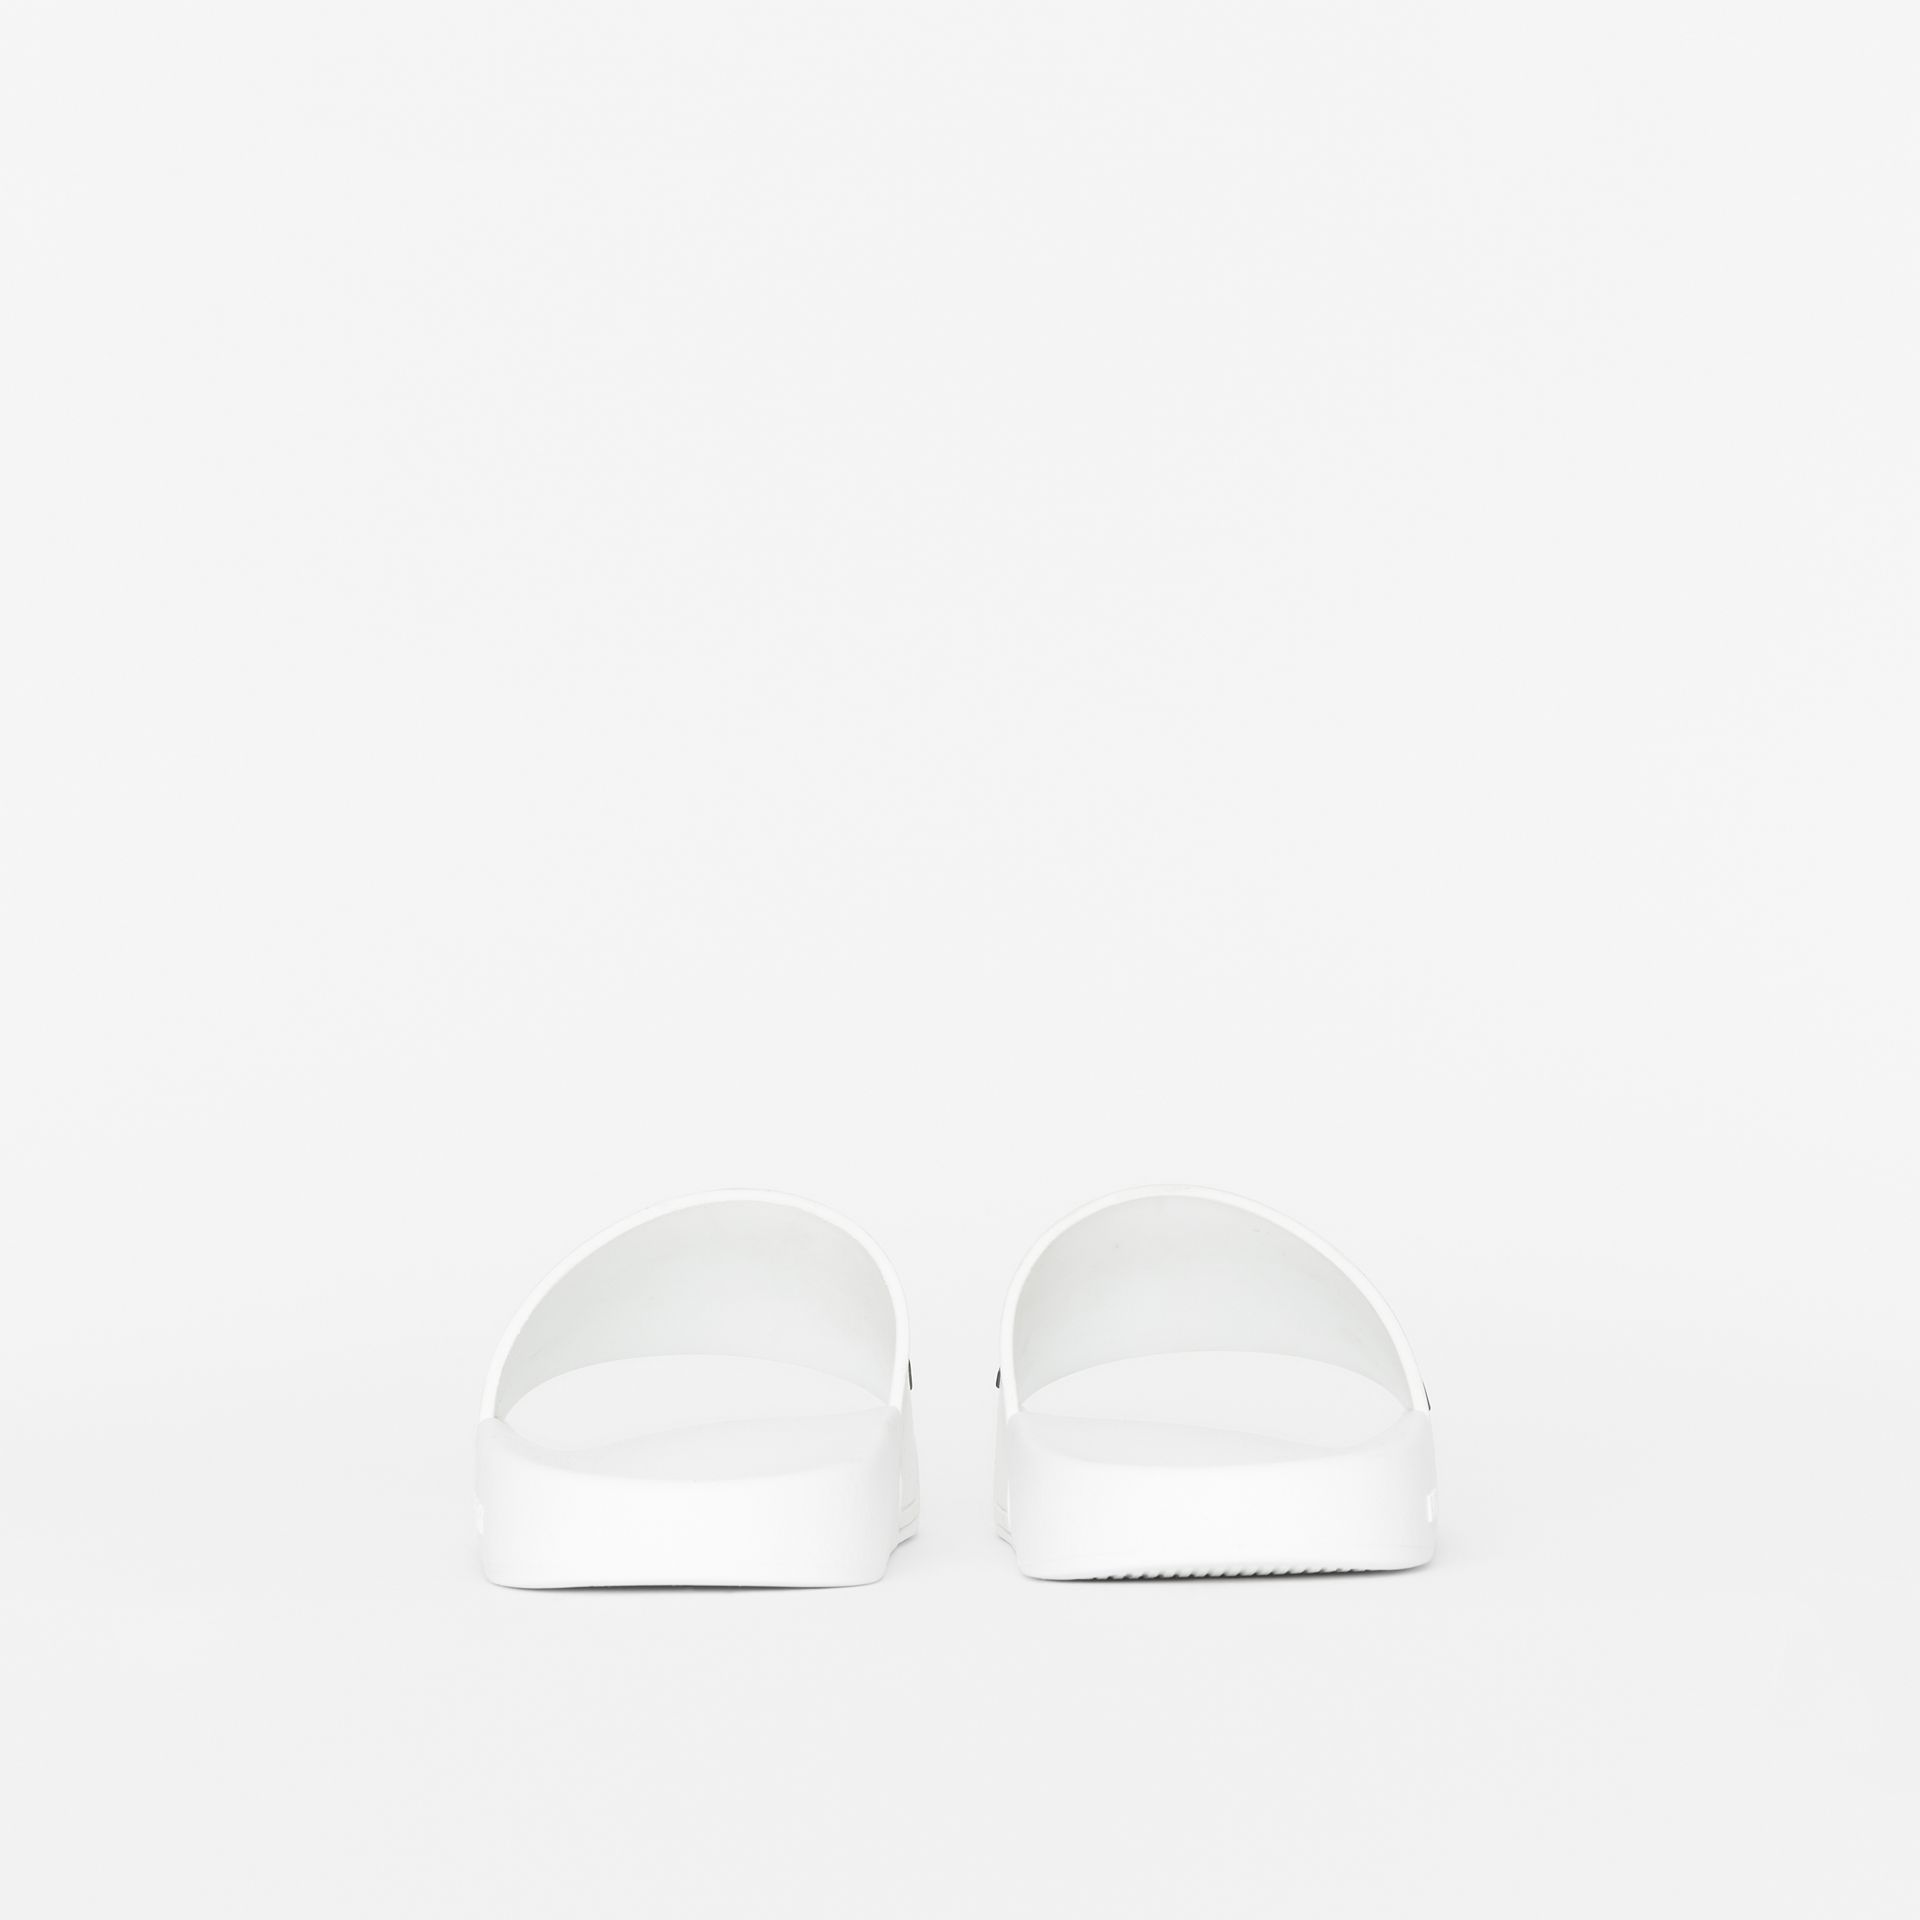 Kingdom Motif Slides in Optic White - Women | Burberry Australia - gallery image 3